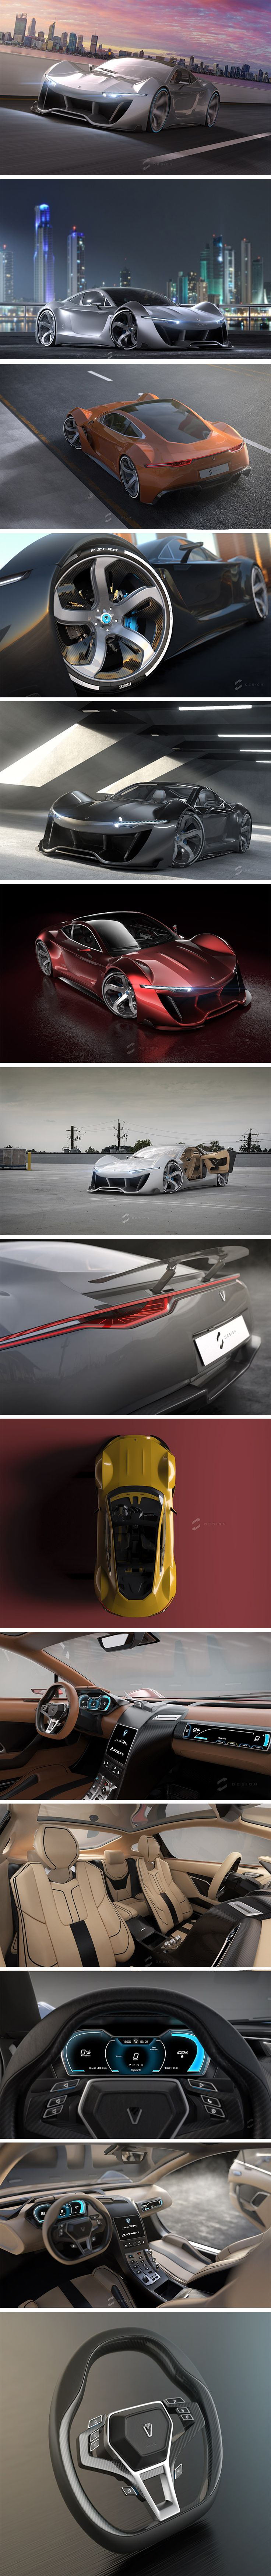 The Lumen electric supercar is polarizing. Under the hood… well, under the hood is space for luggage! It's powertrain consists of a central battery located in the base that powers the electric motors located at the axles. As for the exterior, the most notable features are exaggerated wheels fenders, a dramatic retractable spoiler and surprising half-suicide doors. While they seem like superfluous details for dramatic effect, they each serve a purpose.